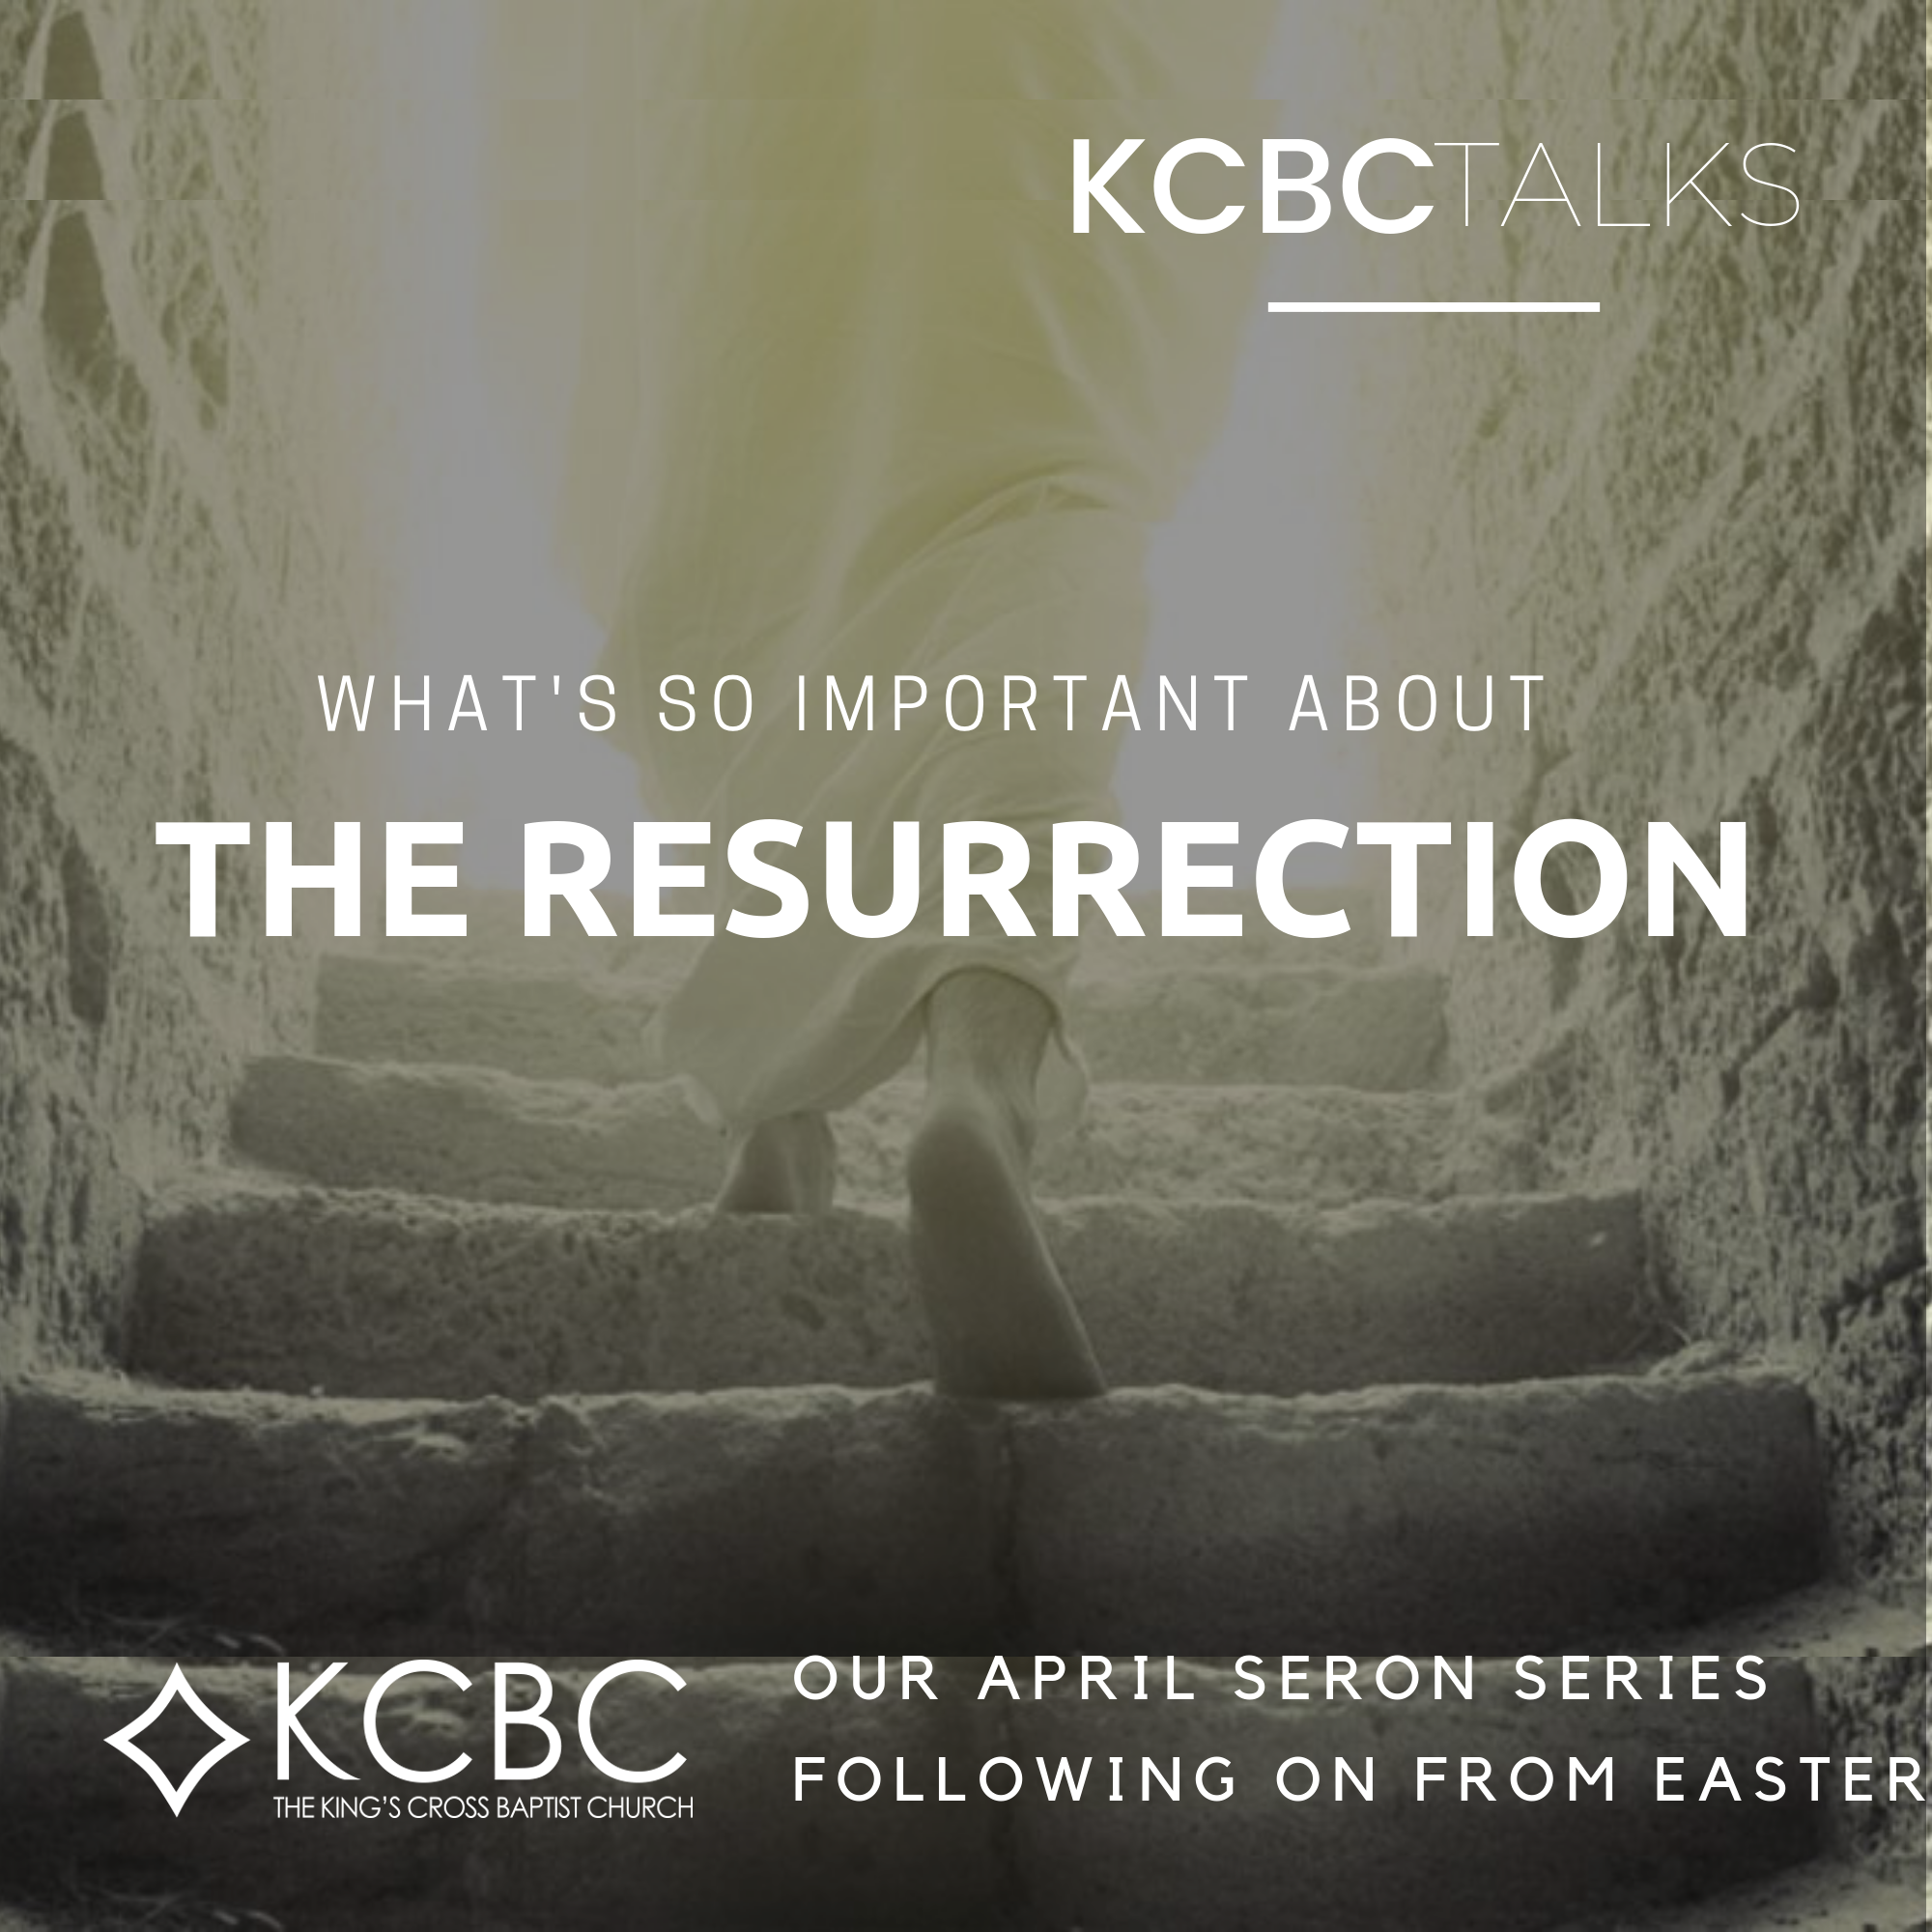 Resurrection: Why does it matter?